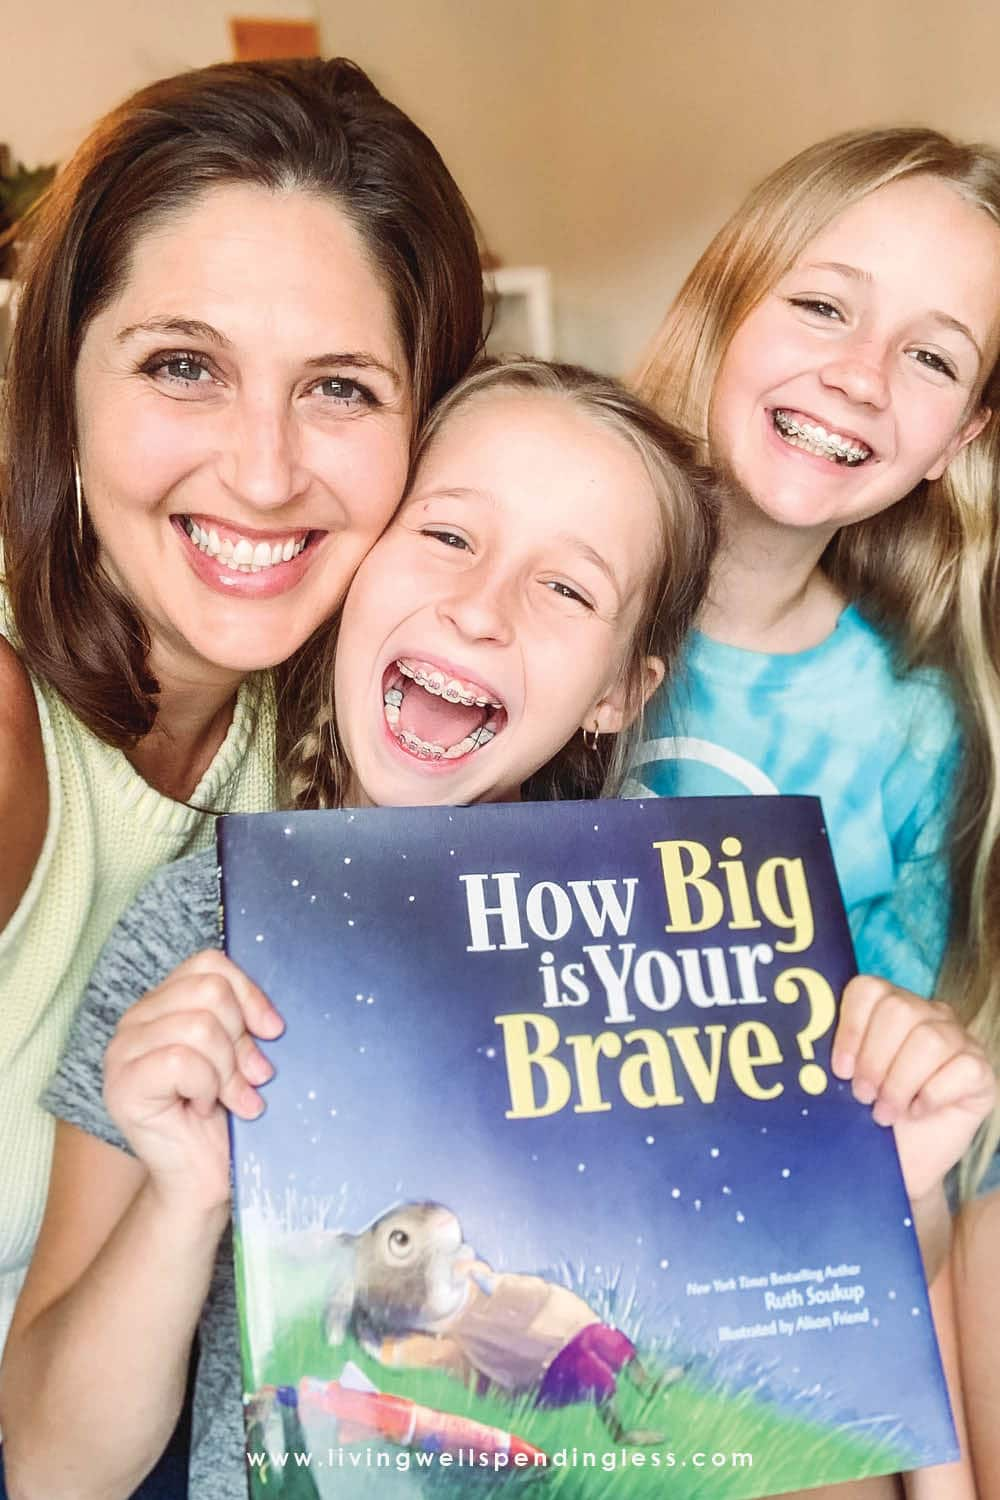 "Ever wish you could help your kids feel more confident or dare to try new things? From bestselling author, Ruth Soukup comes ""How Big Is Your Brave?"", a story with such an important message that empowers children everywhere to move past fear, uncertainty, and disappointment in order to reach their goals and make their dreams come true. Pre-order now to receive three AWESOME book bonuses! #howbigisyourbrave #doitscared #doitscaredmovement #childrensbooks #kidsbooks #books #ruthsoukup #homeschool #homeschoolunitstudy #courage #booksonbravery"